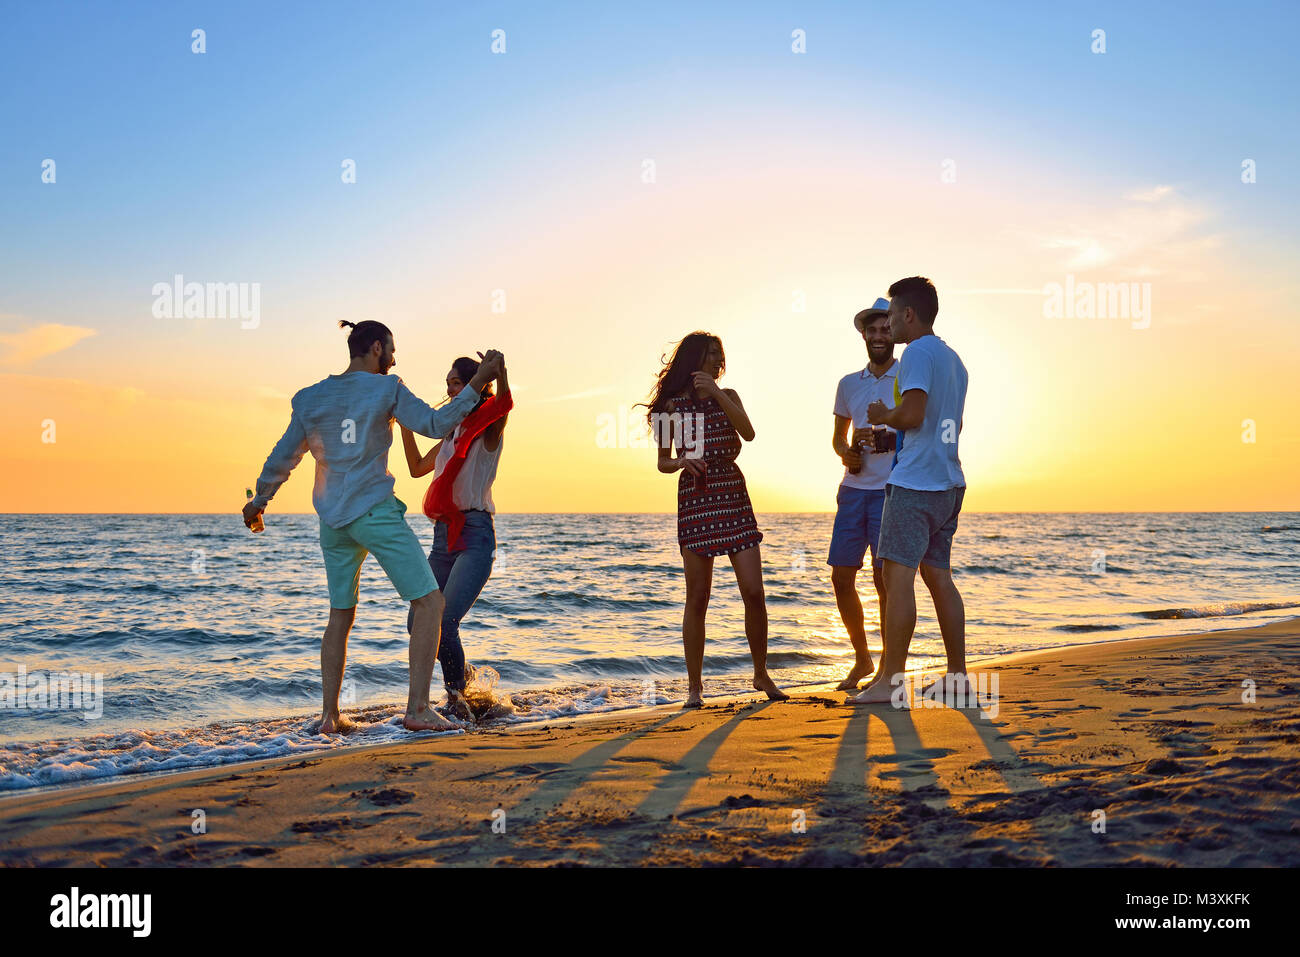 People Celebration Beach Party Summer Holiday Vacation Concept - Stock Image